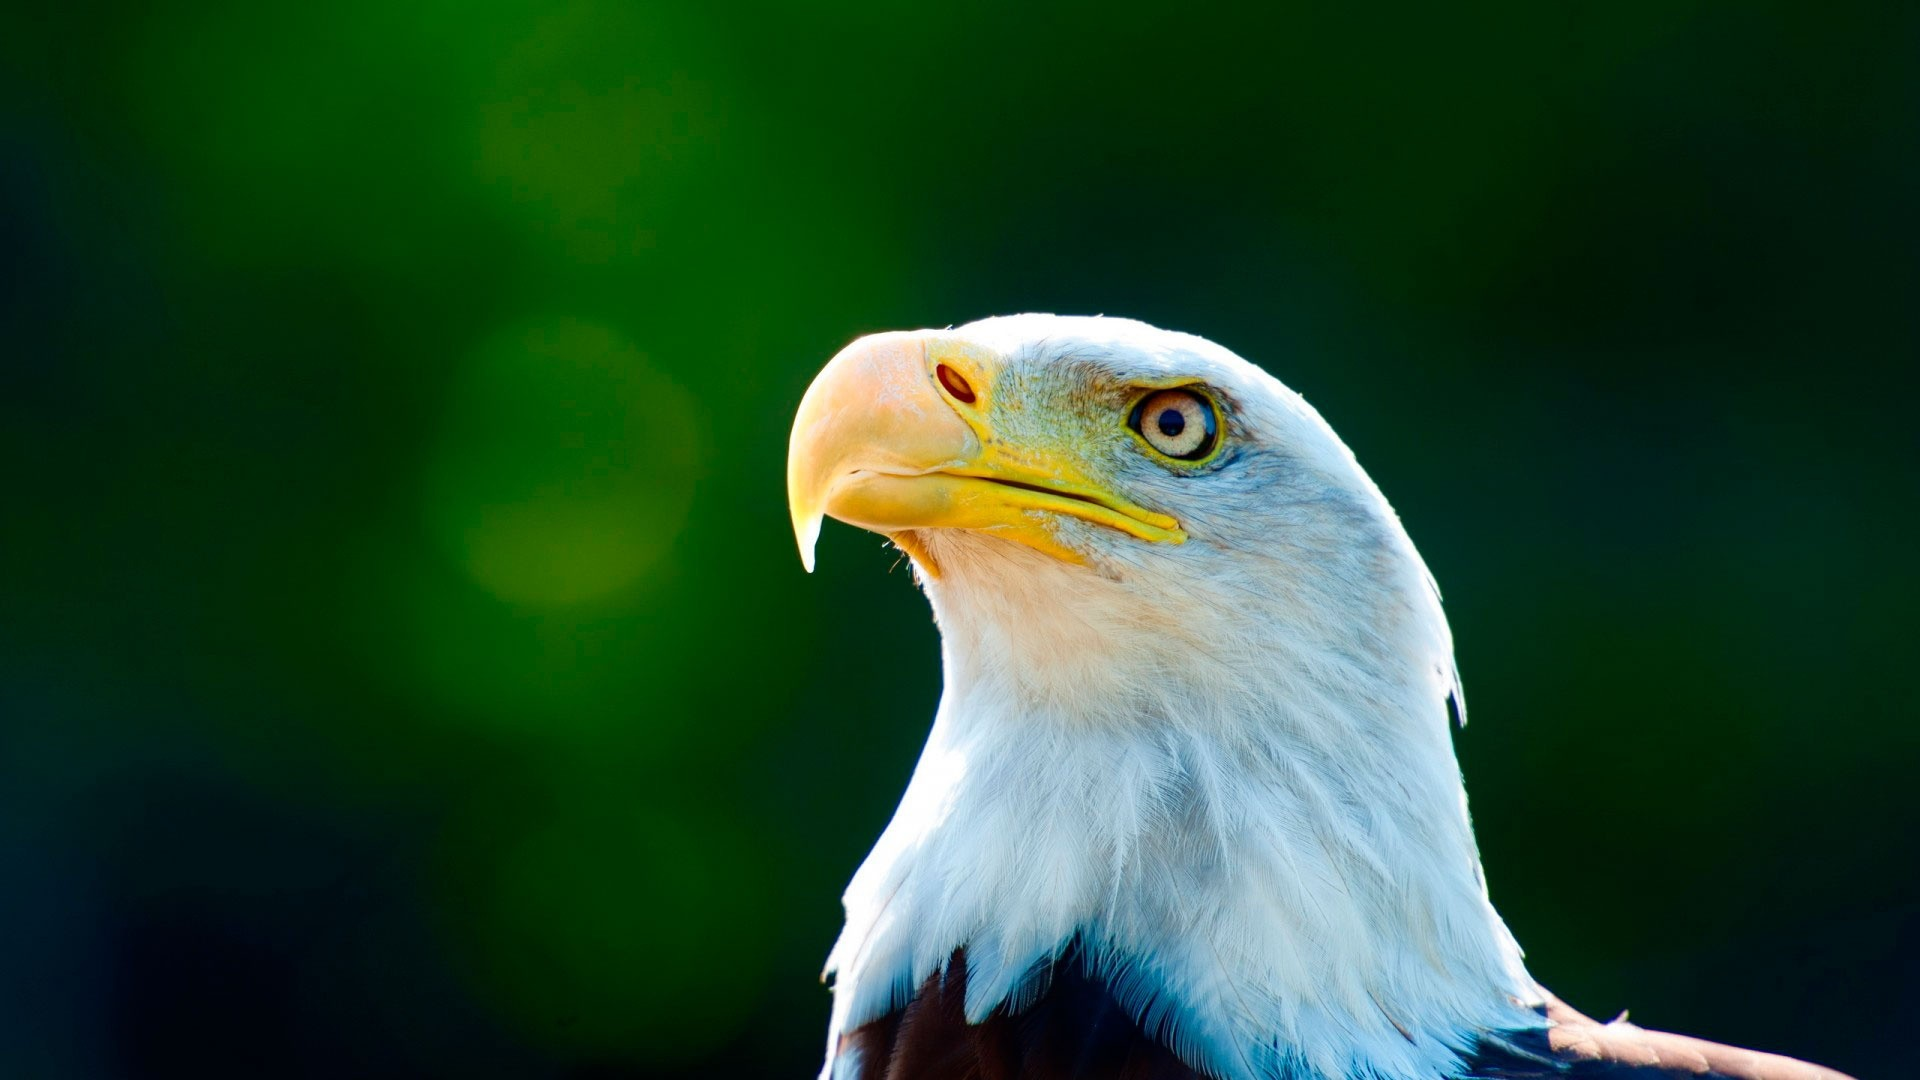 Eagle Free Wallpaper and Background